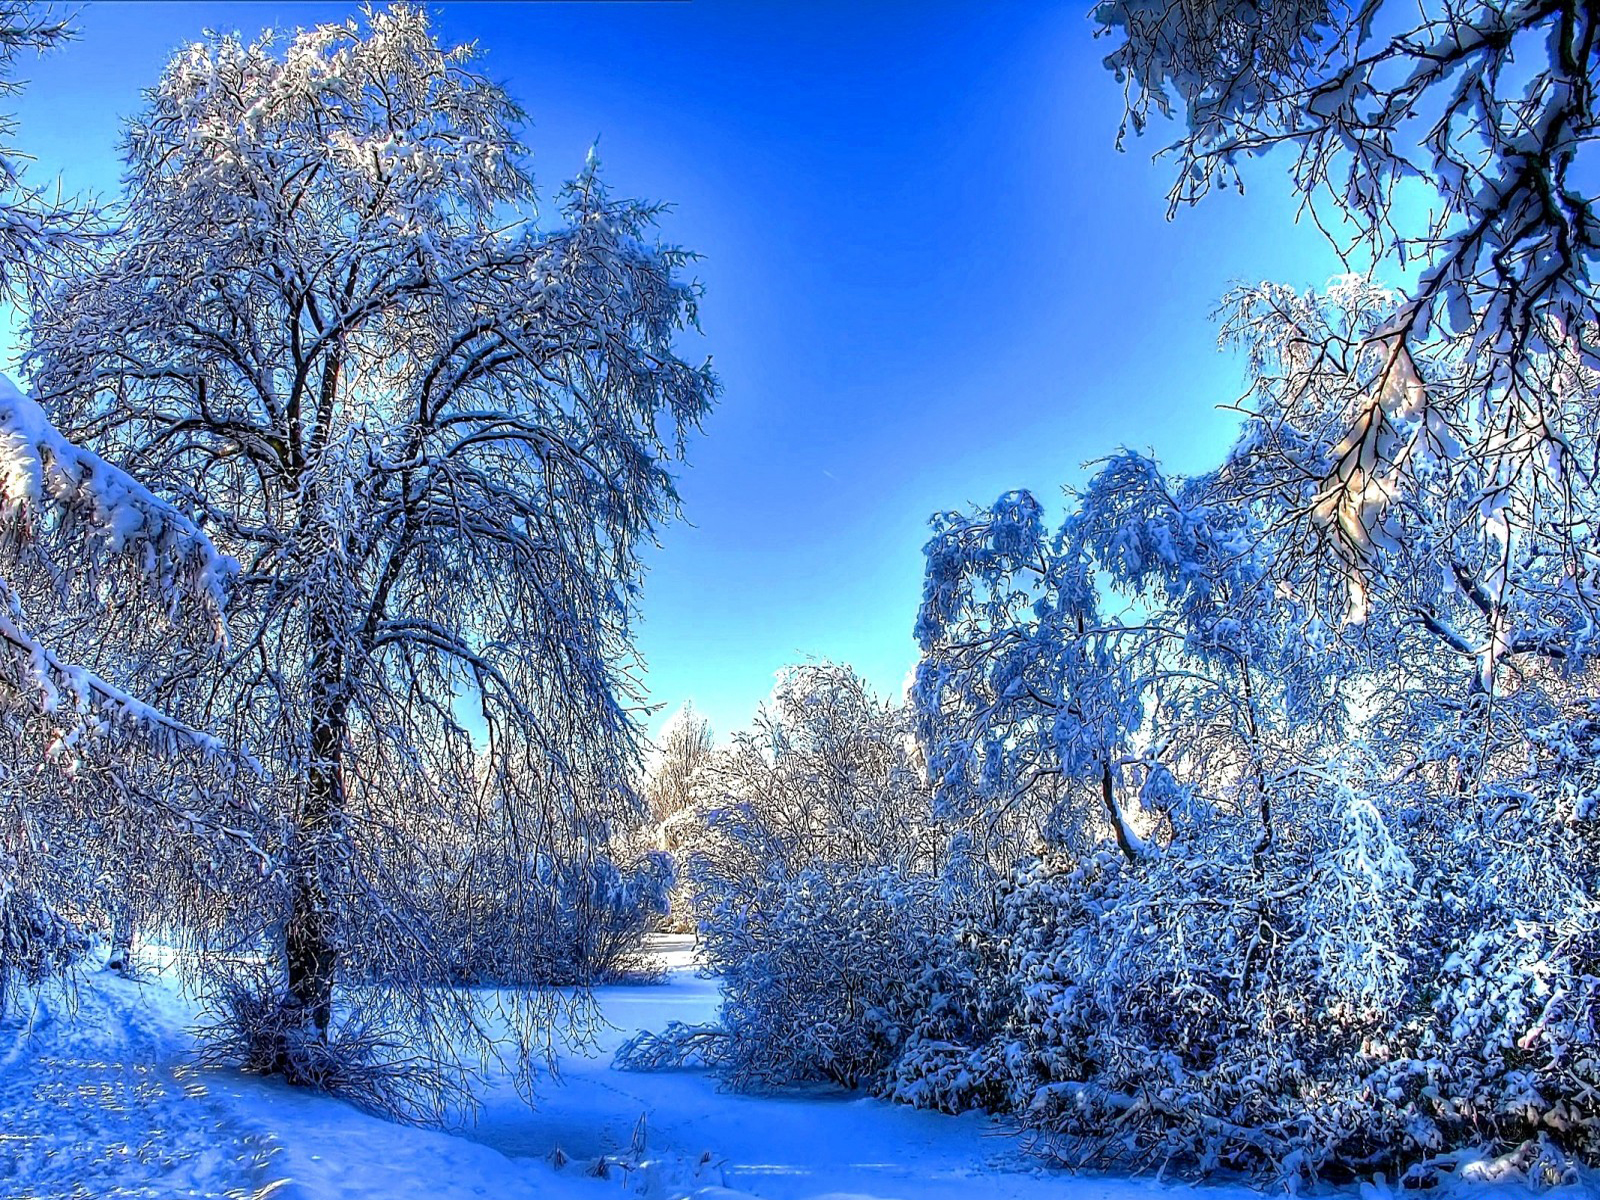 cute winter landscape wallpaper   ForWallpapercom 1600x1200